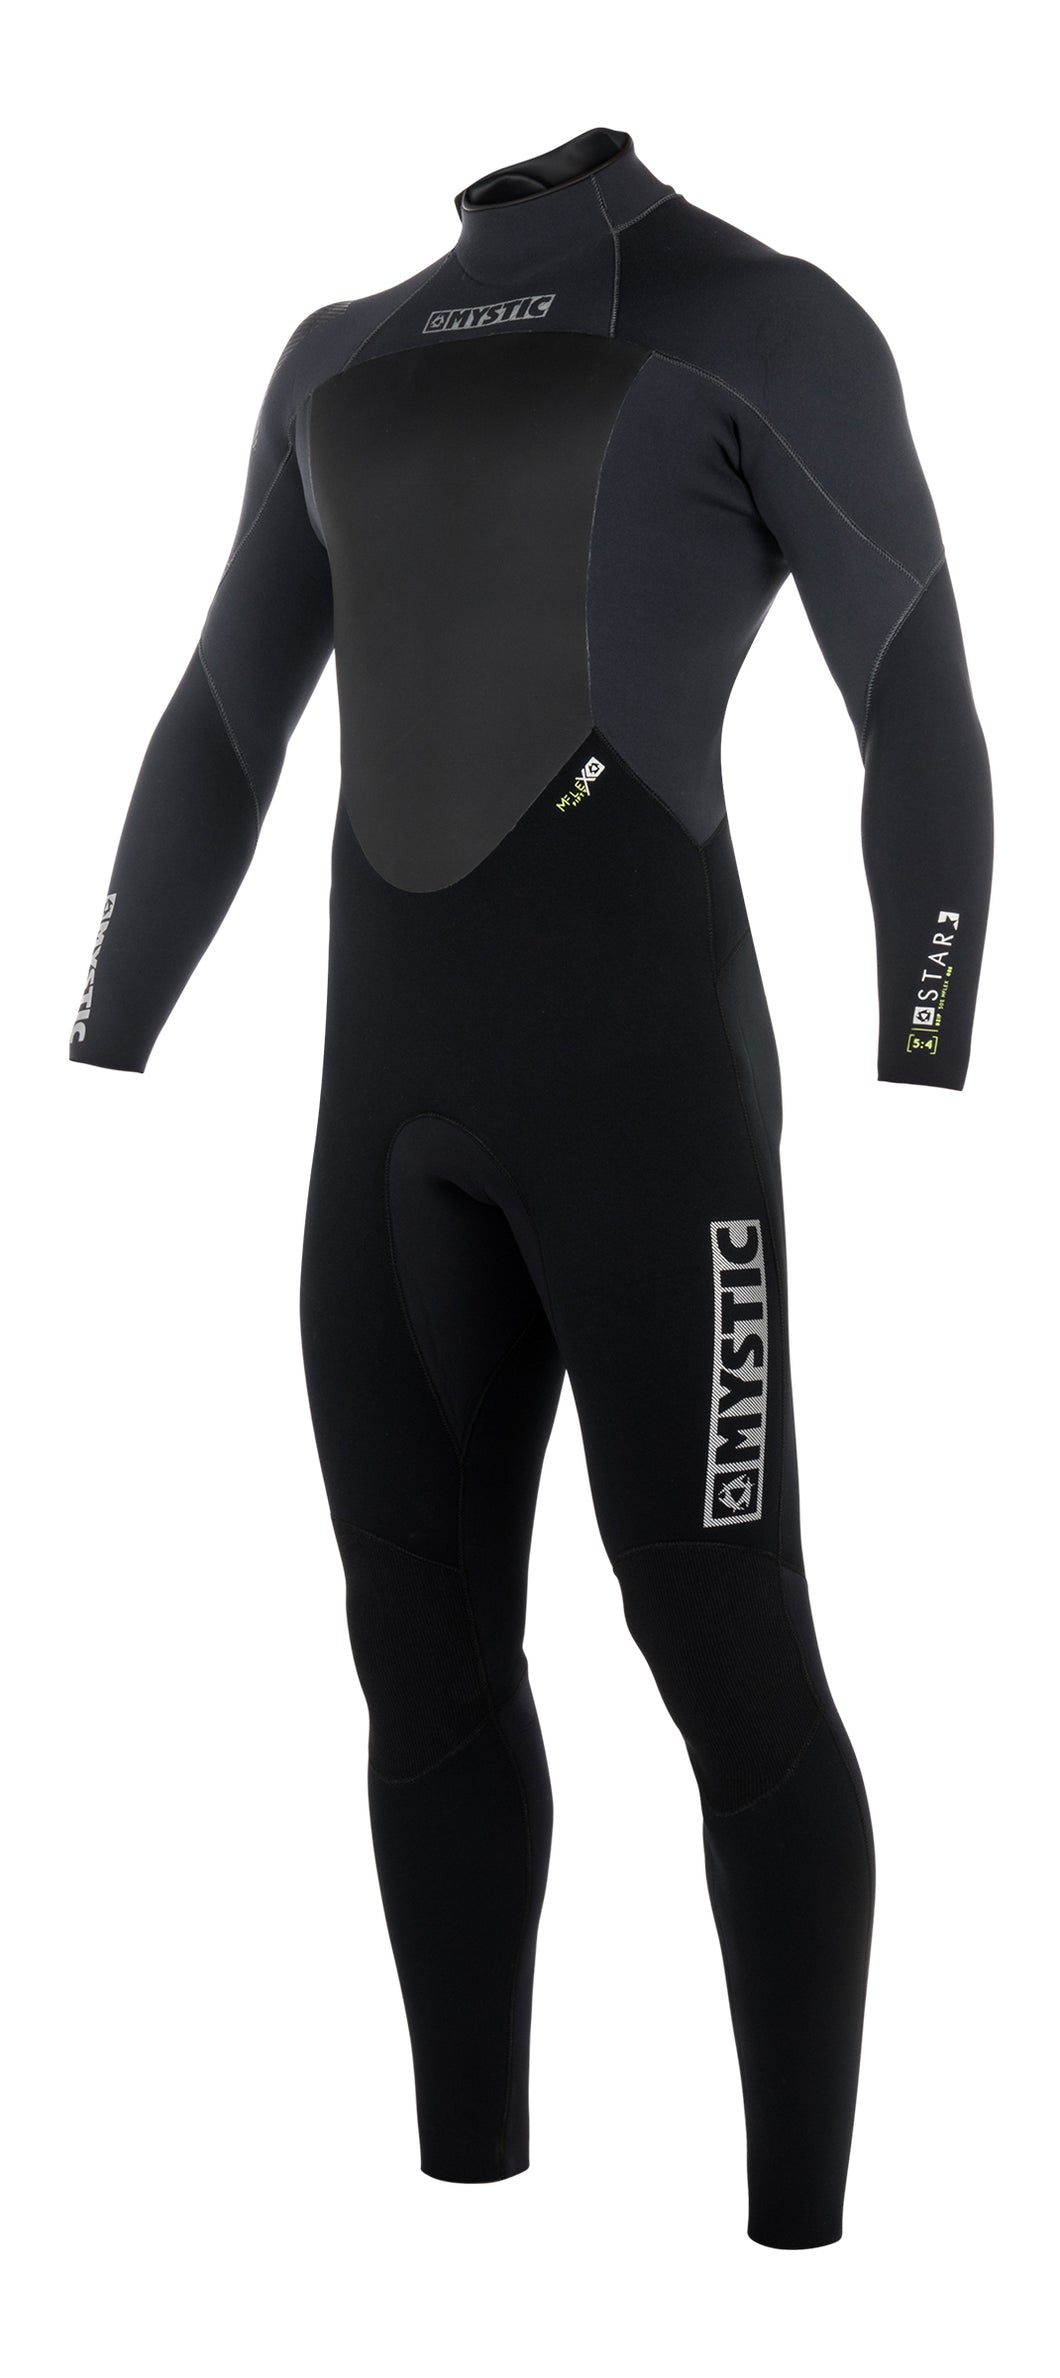 Star Fullsuit 3/2mm Bzip